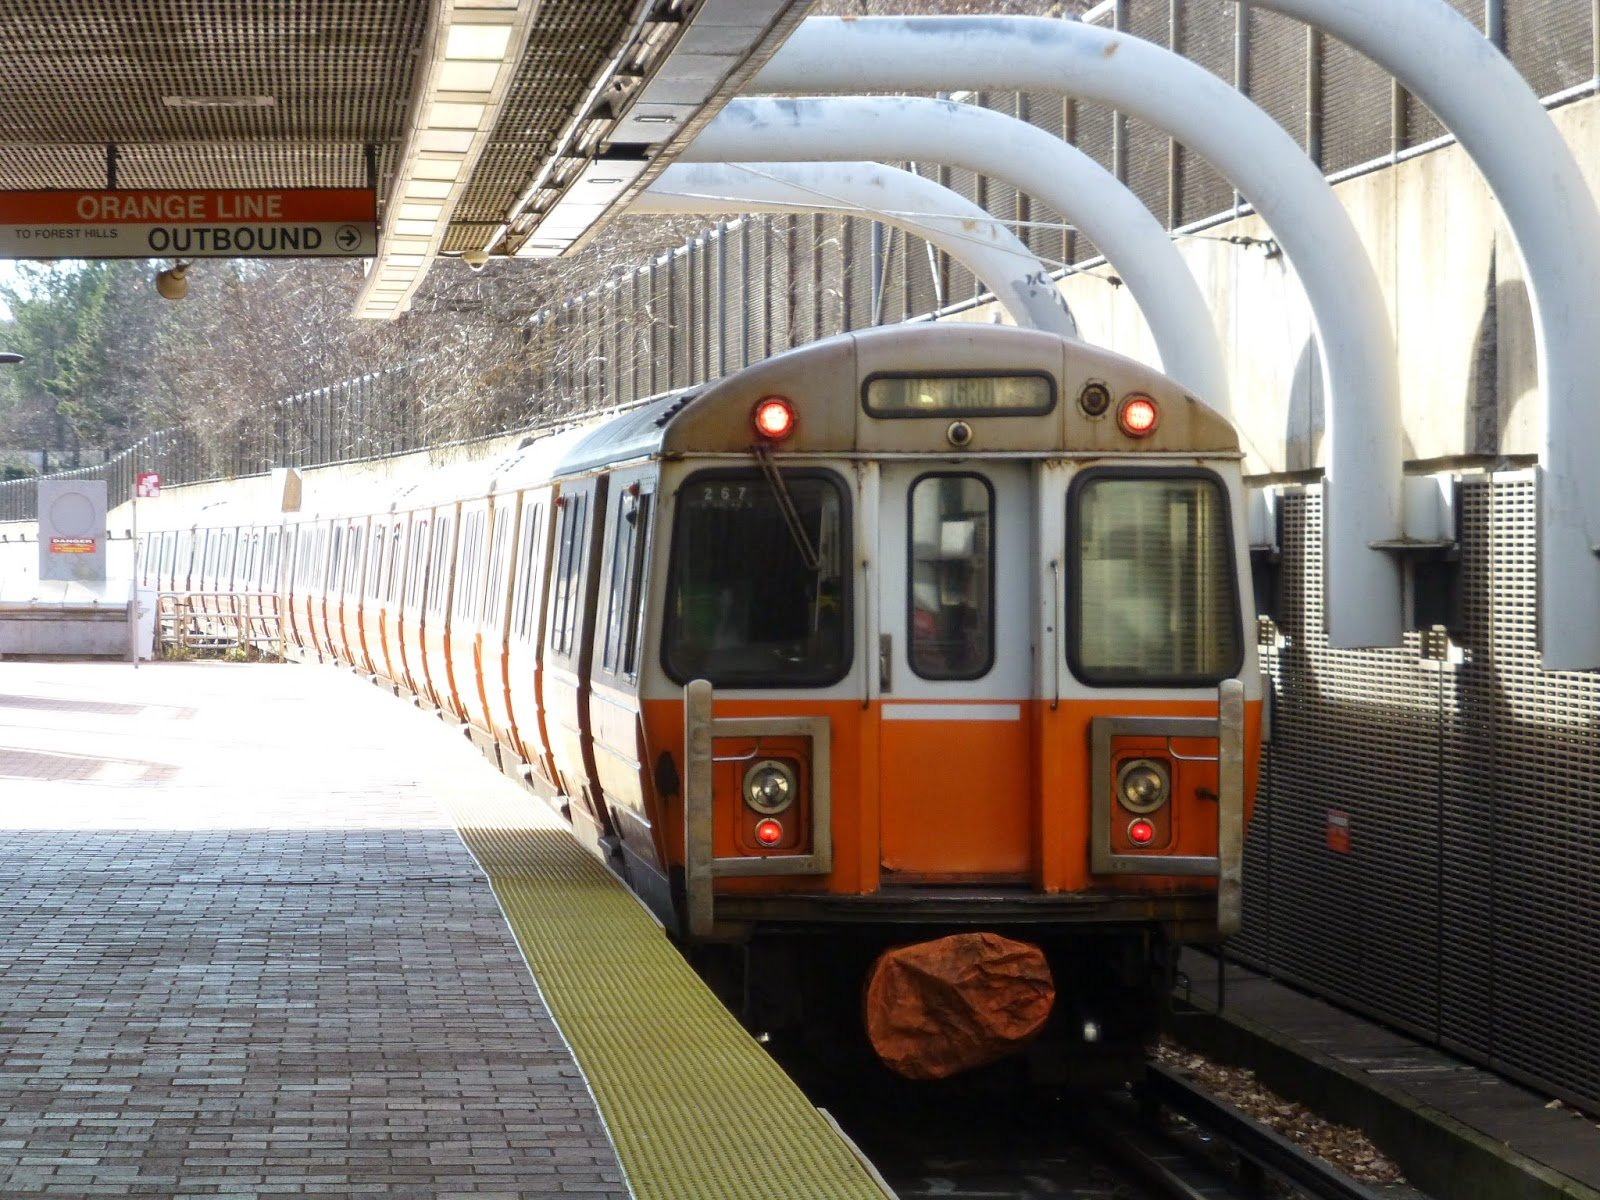 A photo of a train leaving the Roxbury Crossing Orange Line Station. Roxbury Crossing is a rapid transit station on the MBTA Orange Line, located on Tremont Street in the Mission Hill neighborhood of Boston. The current station opened in 1987 as part of the renovation and relocation of the southern Orange Line. Like all stations on the Orange Line, Roxbury Crossing is wheelchair accessible.